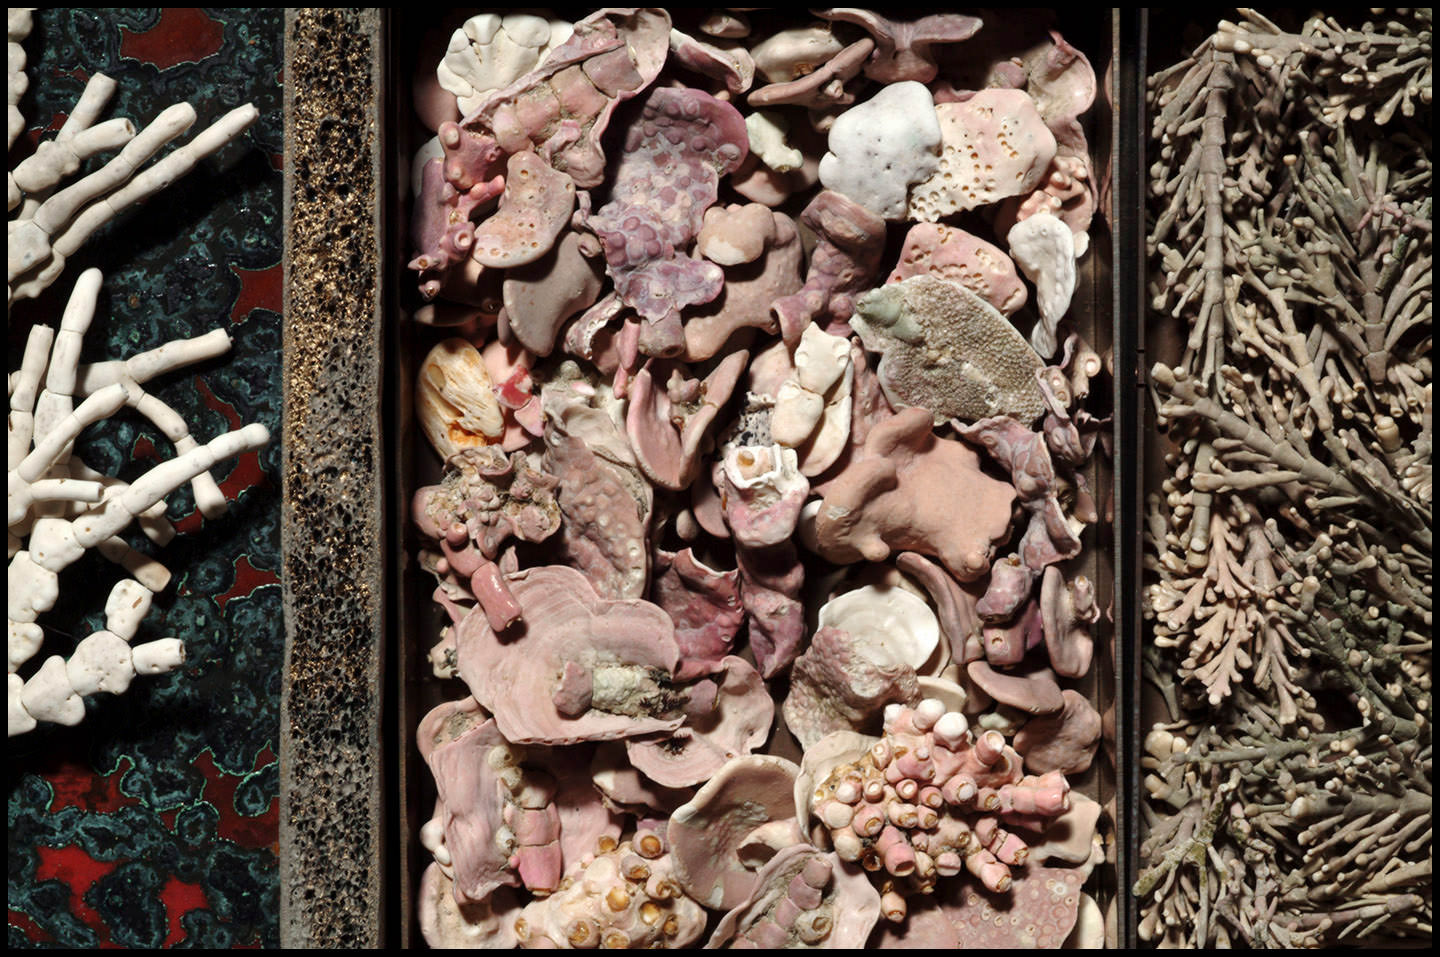 Various species and growth stages of Coralline algae. The larger pieces are what adheres to a substrate.